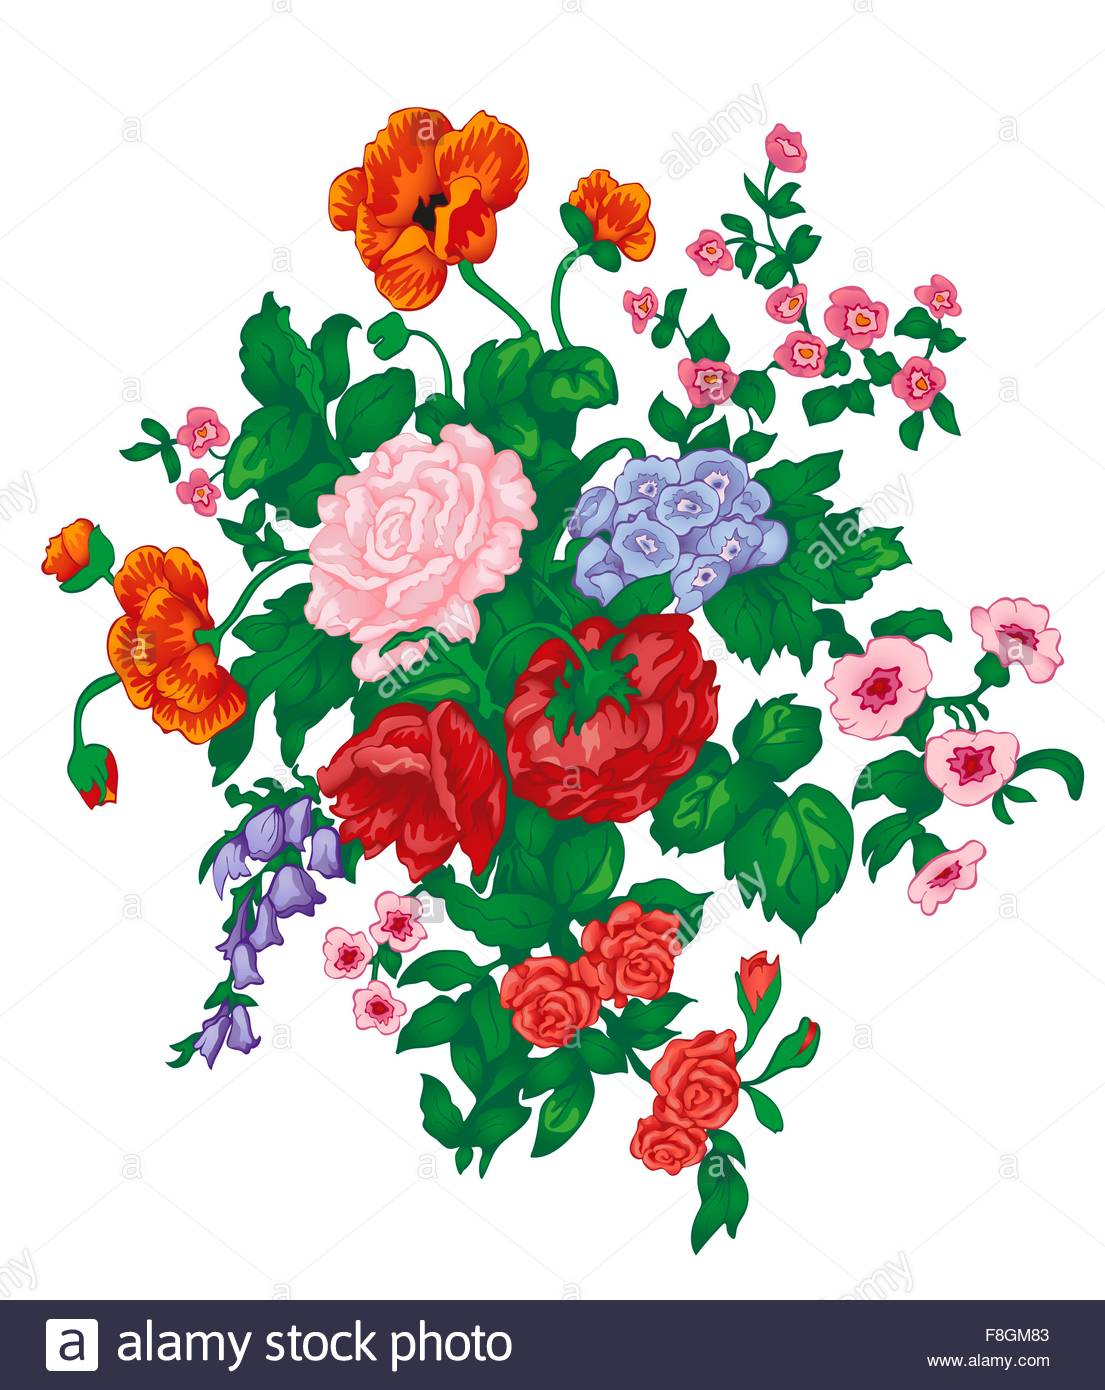 Vector Bouquet With Red Rose, Poppies, Bluebells, Wild Flowers And.